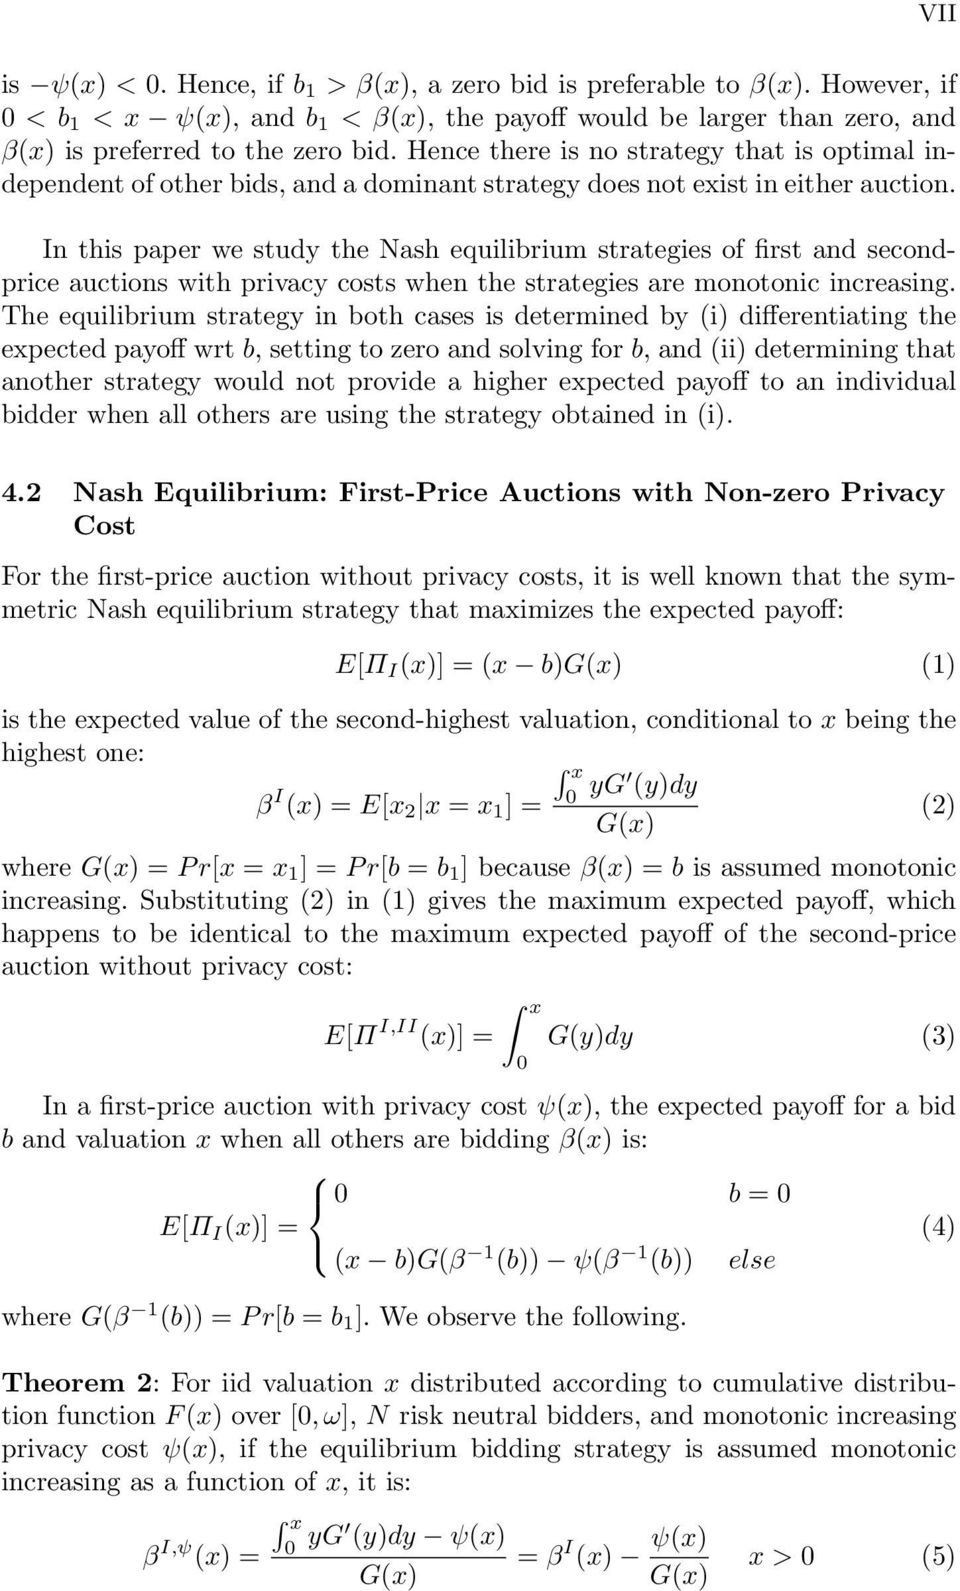 In this paper we study the Nash equilibrium strategies of first and secondprice auctions with privacy costs when the strategies are monotonic increasing.